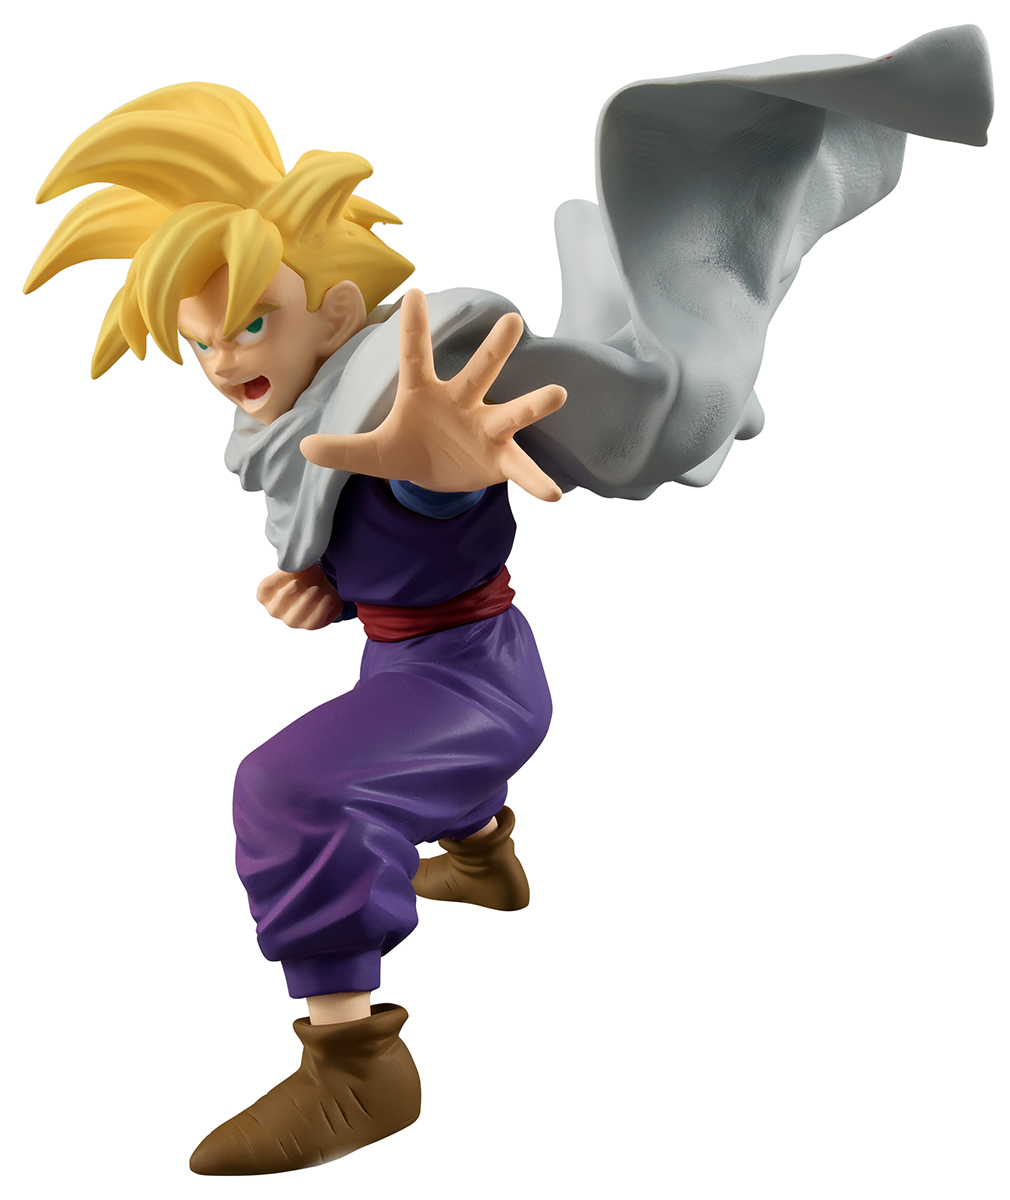 Bandai Фигурка Dragon Ball Styling Son Gohan